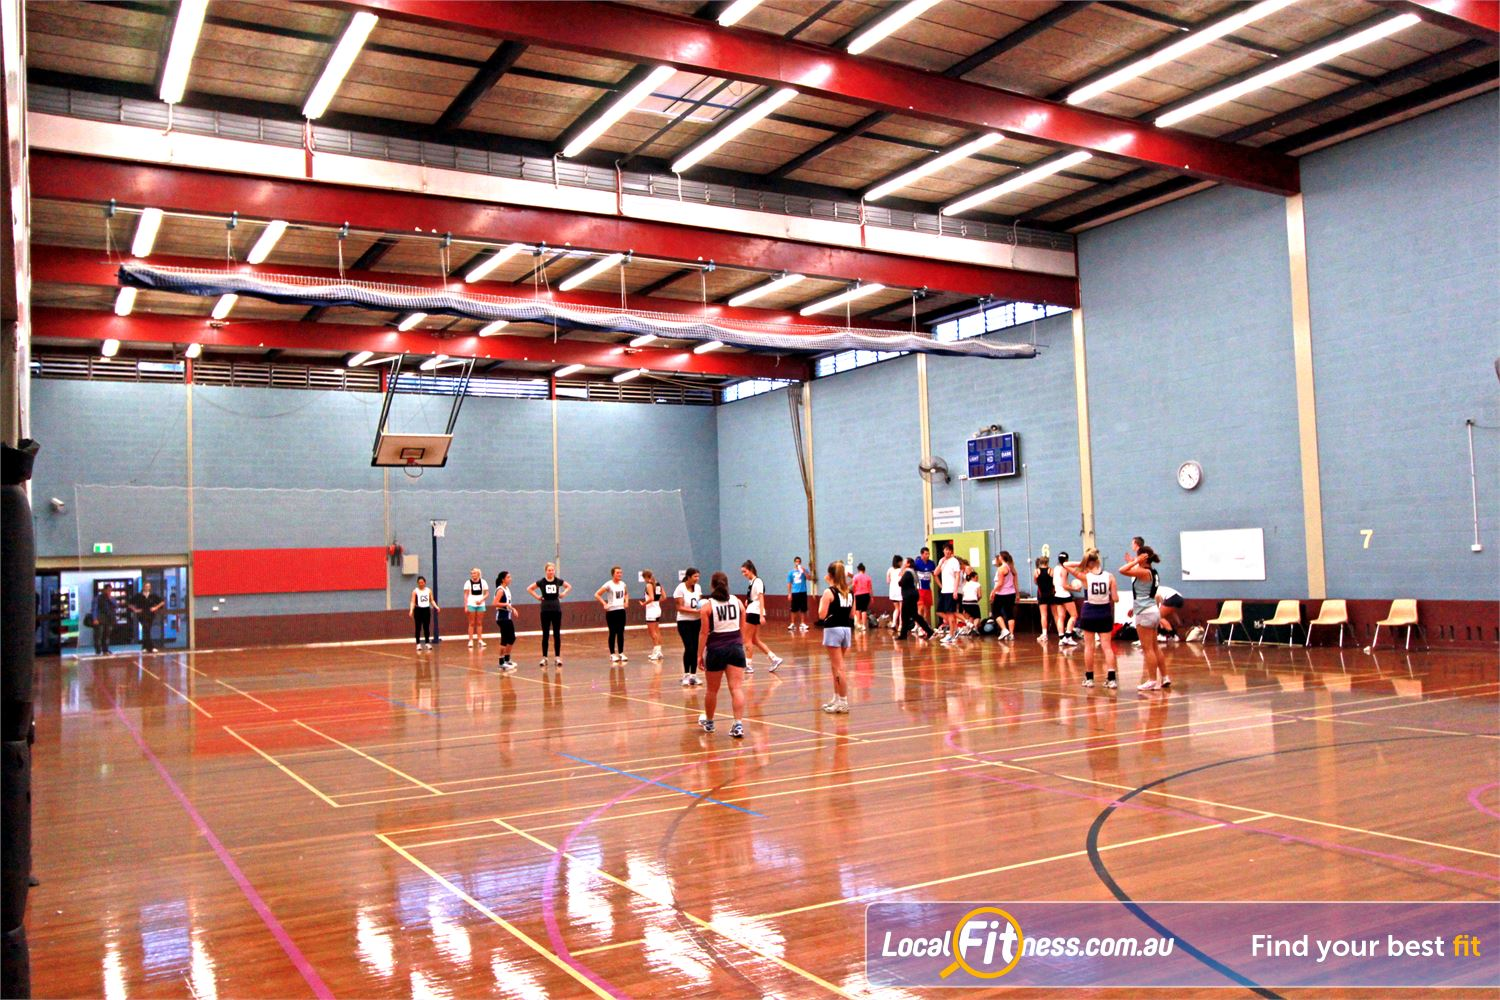 Macquarie University Sport & Aquatic Centre Macquarie Park Macquarie University Netball and basketball Competitions are open to everyone.